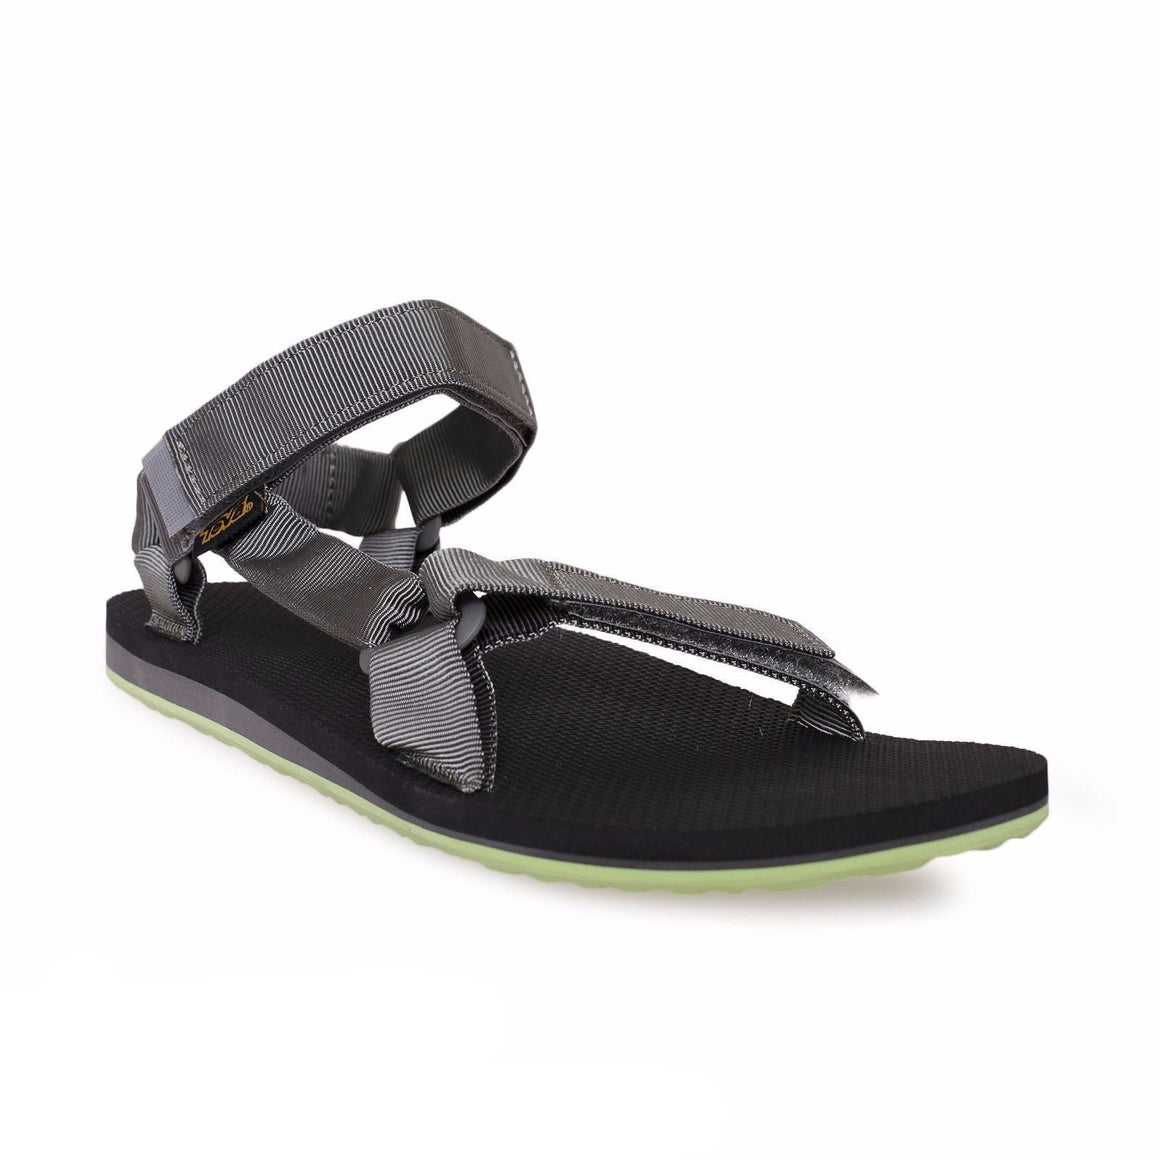 Teva Original Universal Grey / Black Sandals